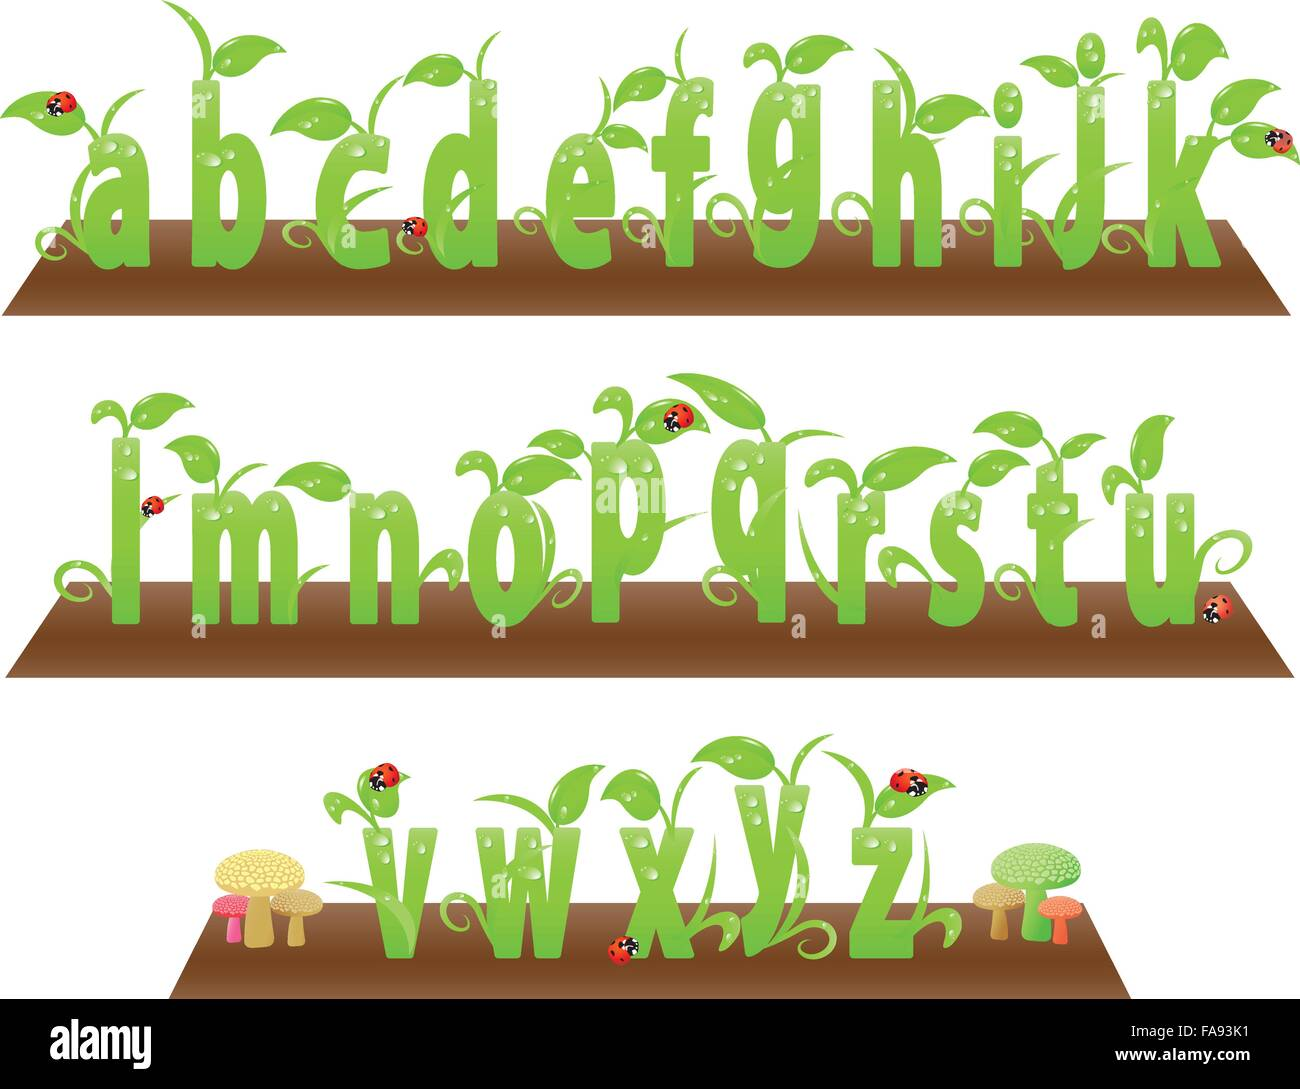 Environment friendly small English alphabets from a to z